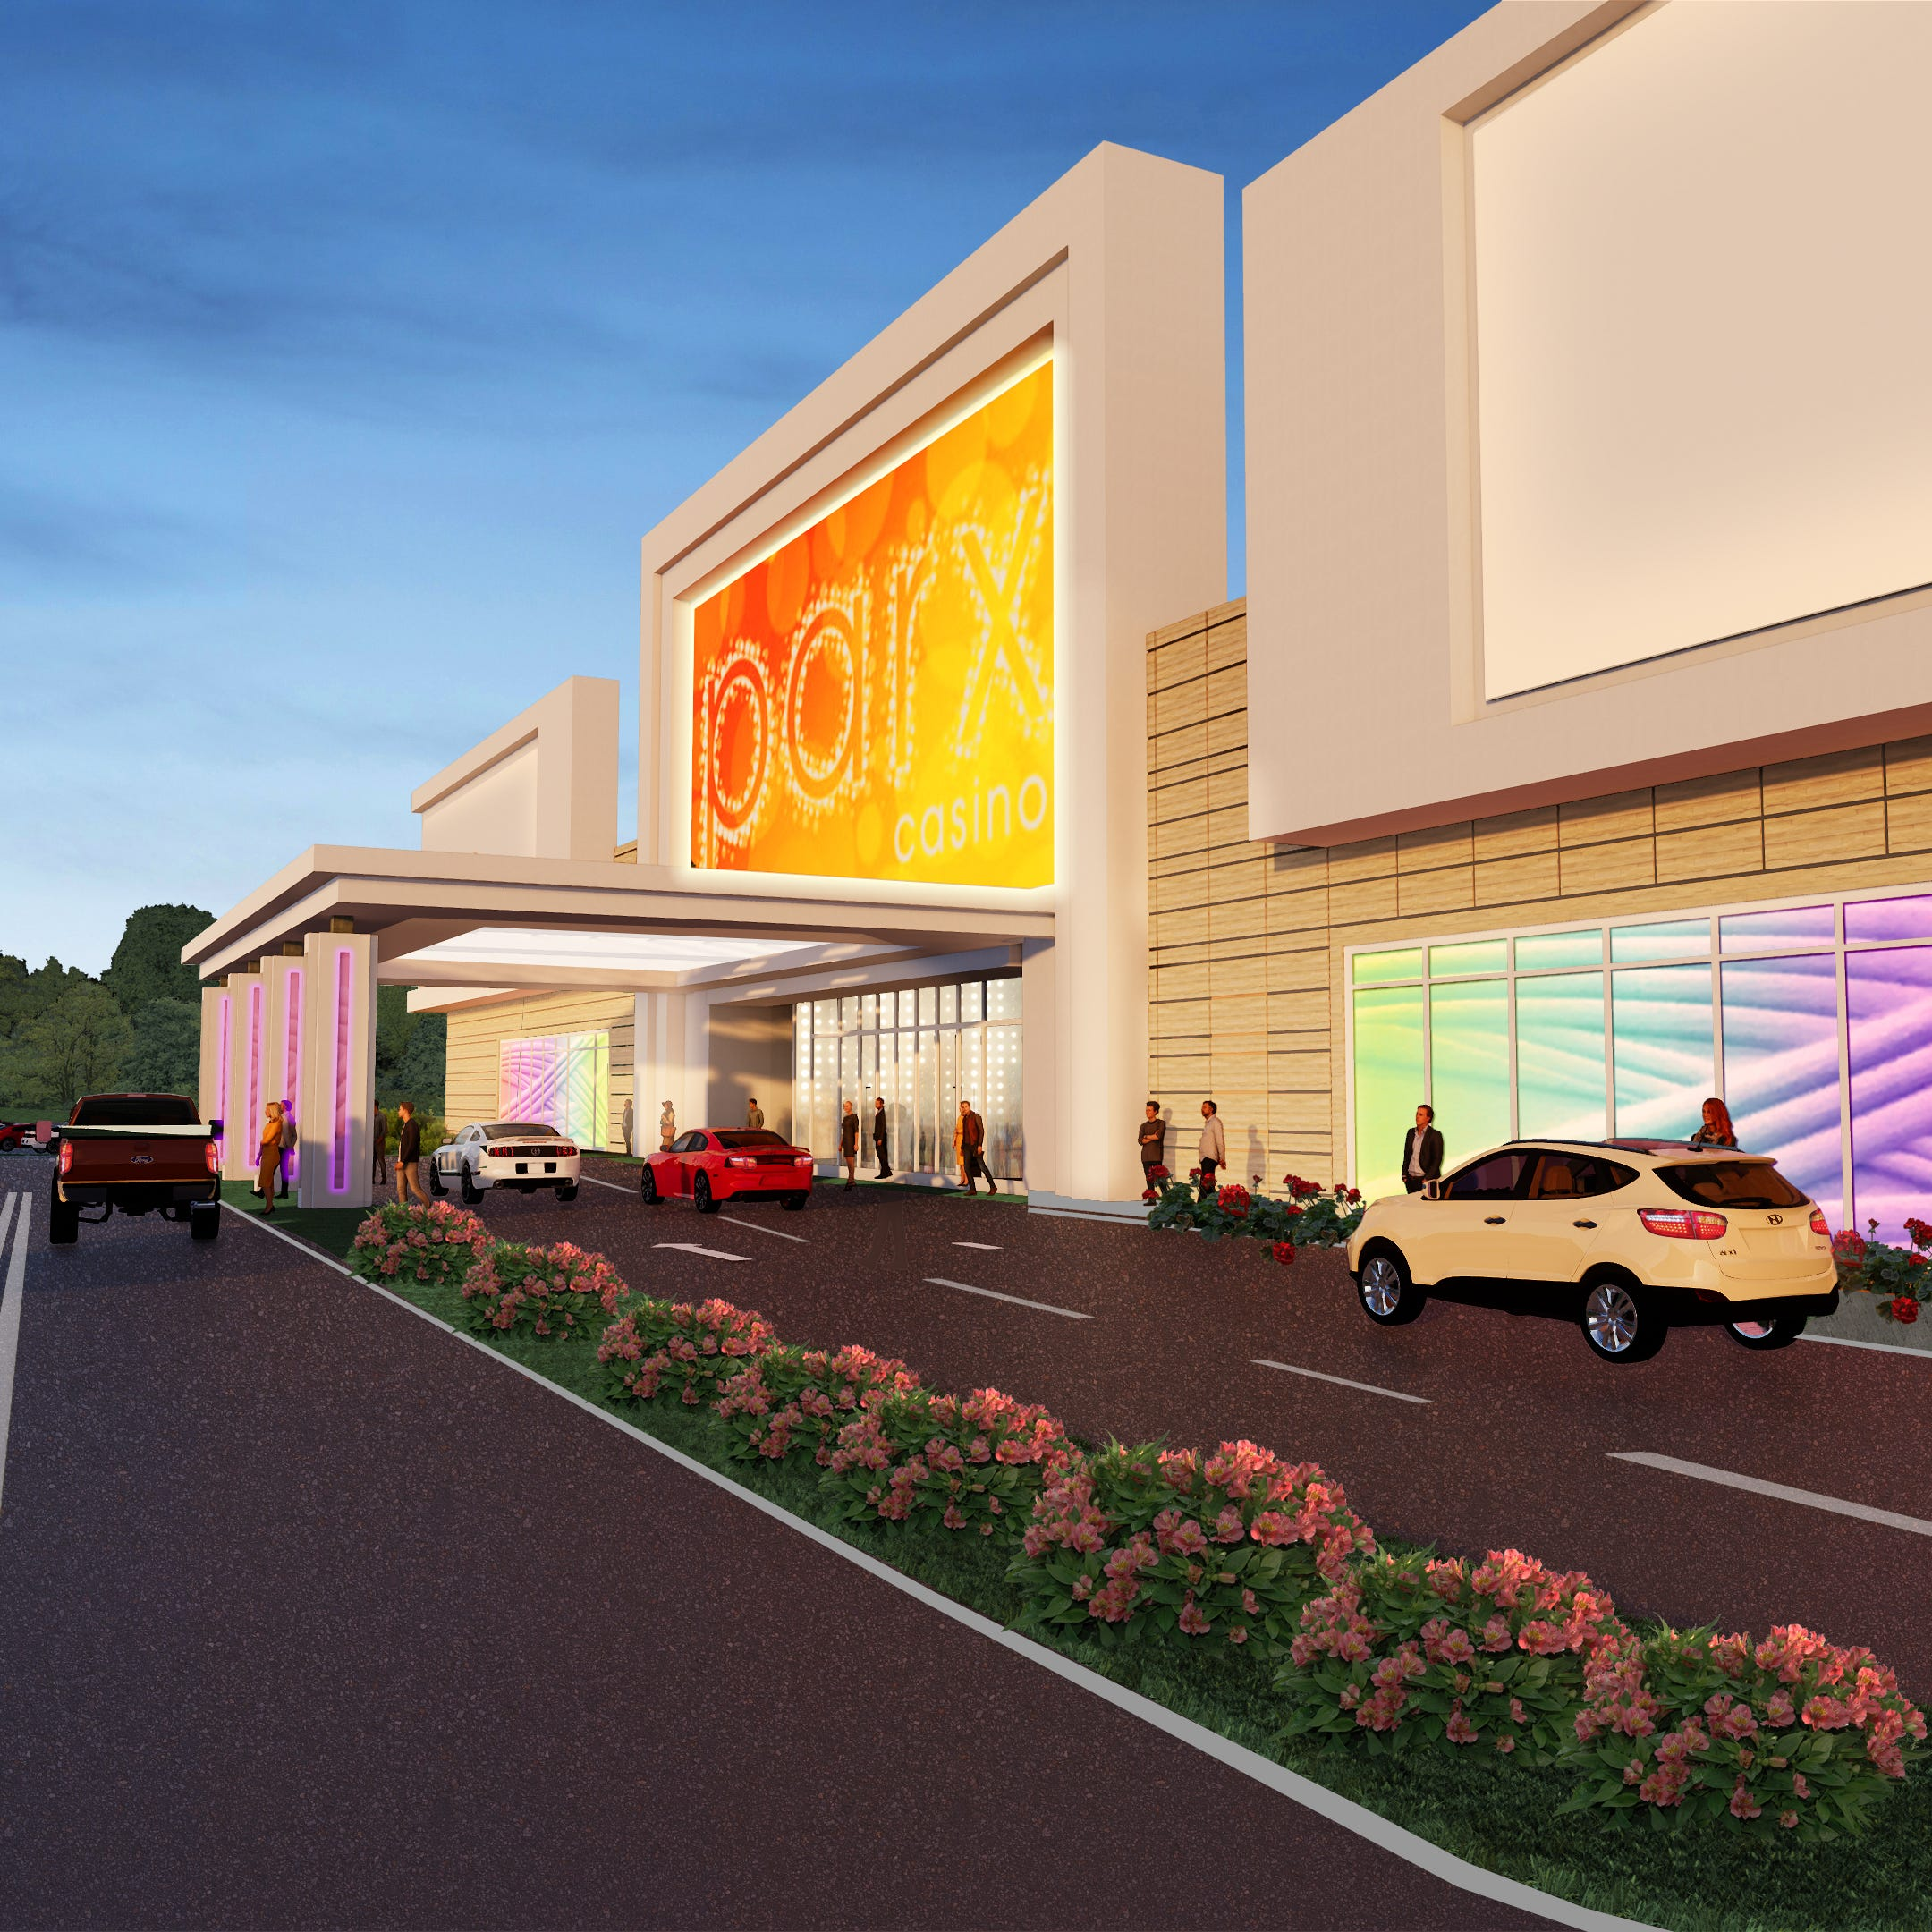 Letters to the editor: With casino, 'slime' will seep into small-town Shippensburg